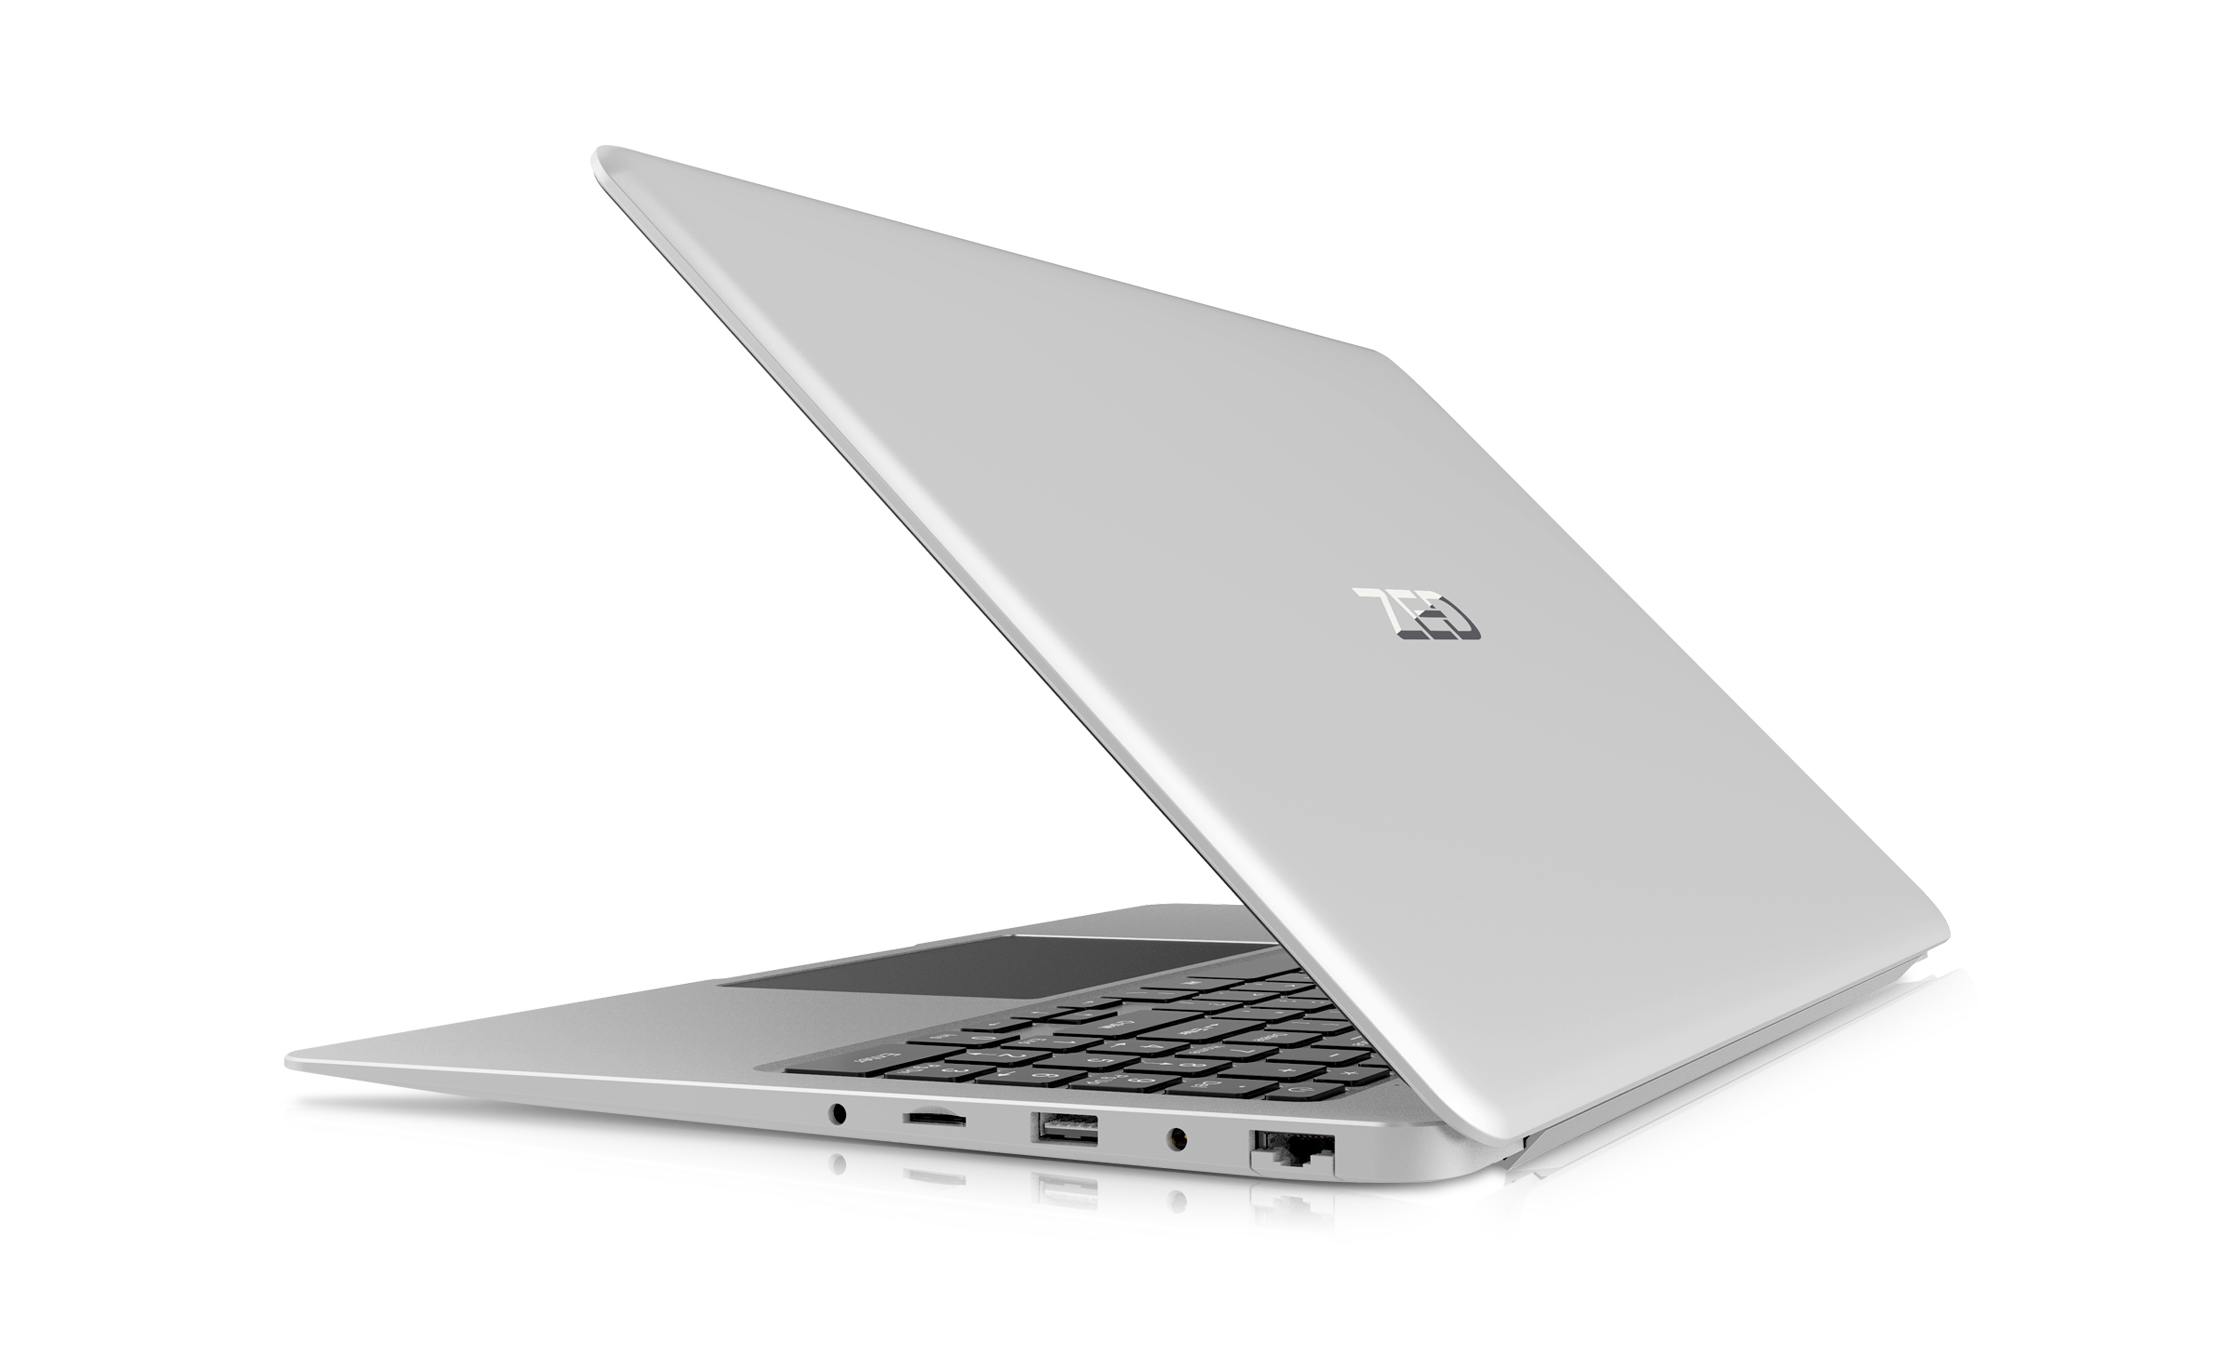 zedair plus 15.6 laptop